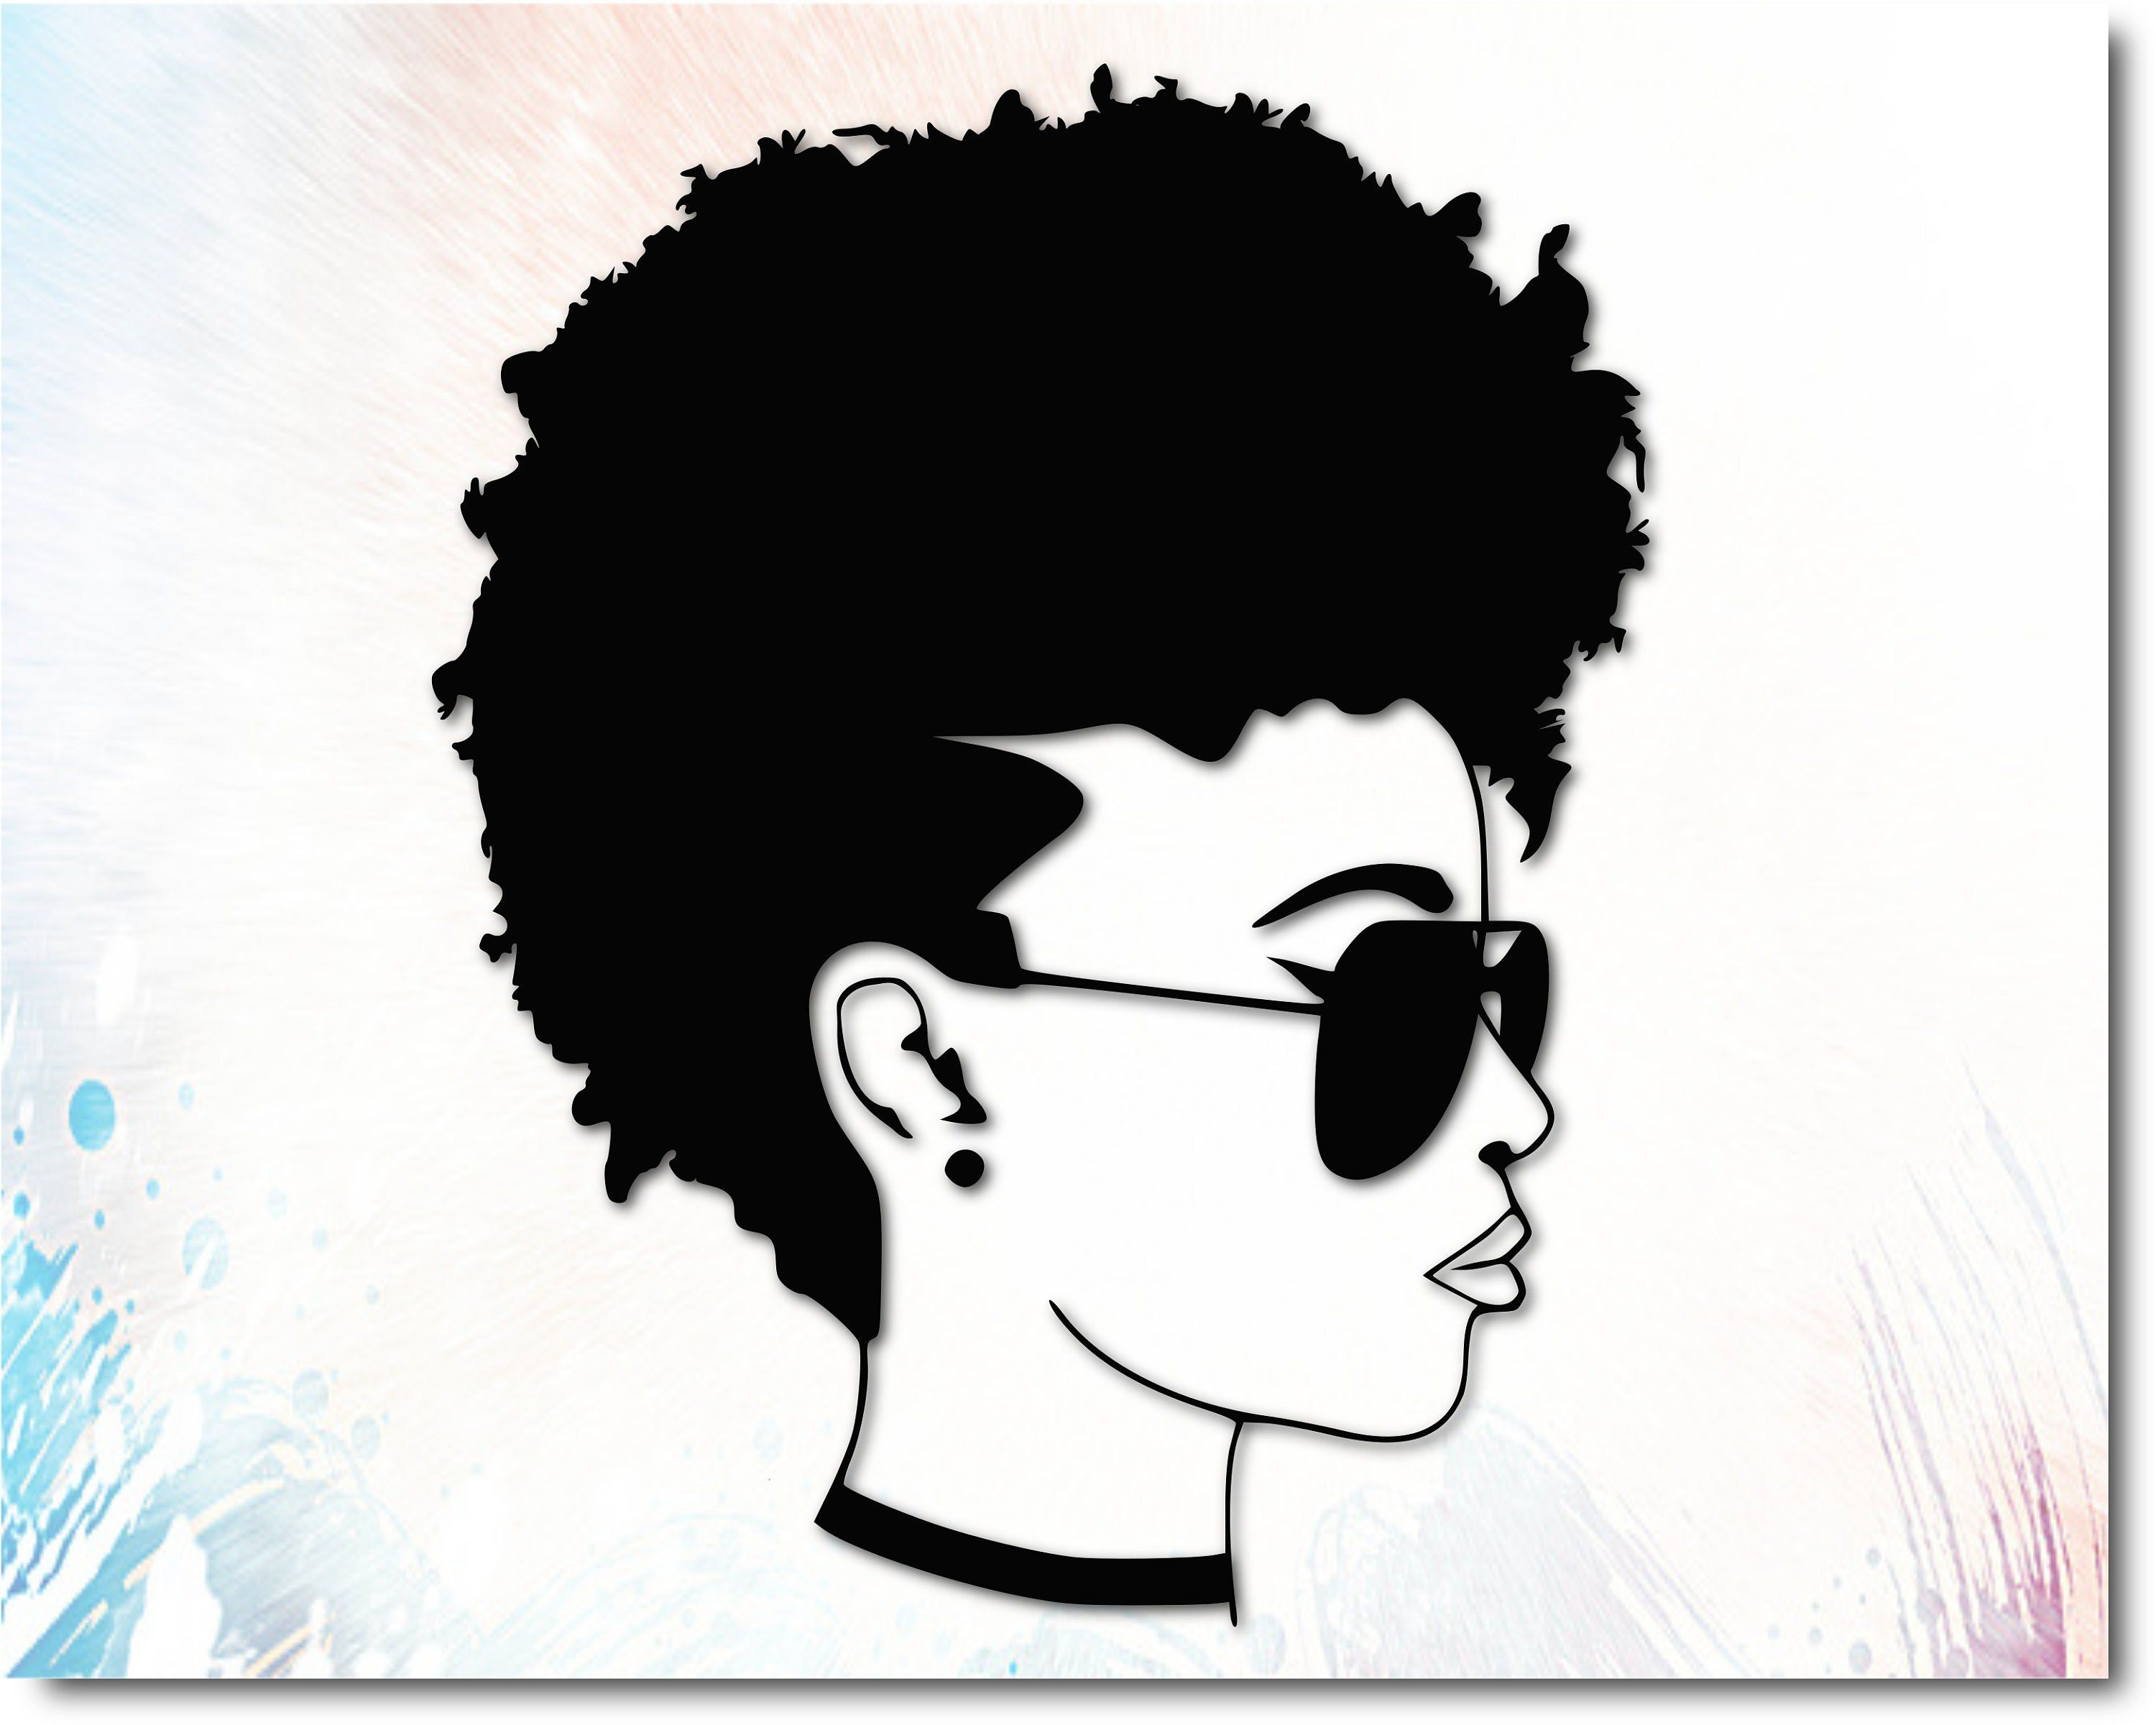 Afro Silhouette Black Woman Svg African American Svg Queen Svg Printable File Cricut Silhouette Silhouette Art Black Woman Silhouette Silhouette Clip Art